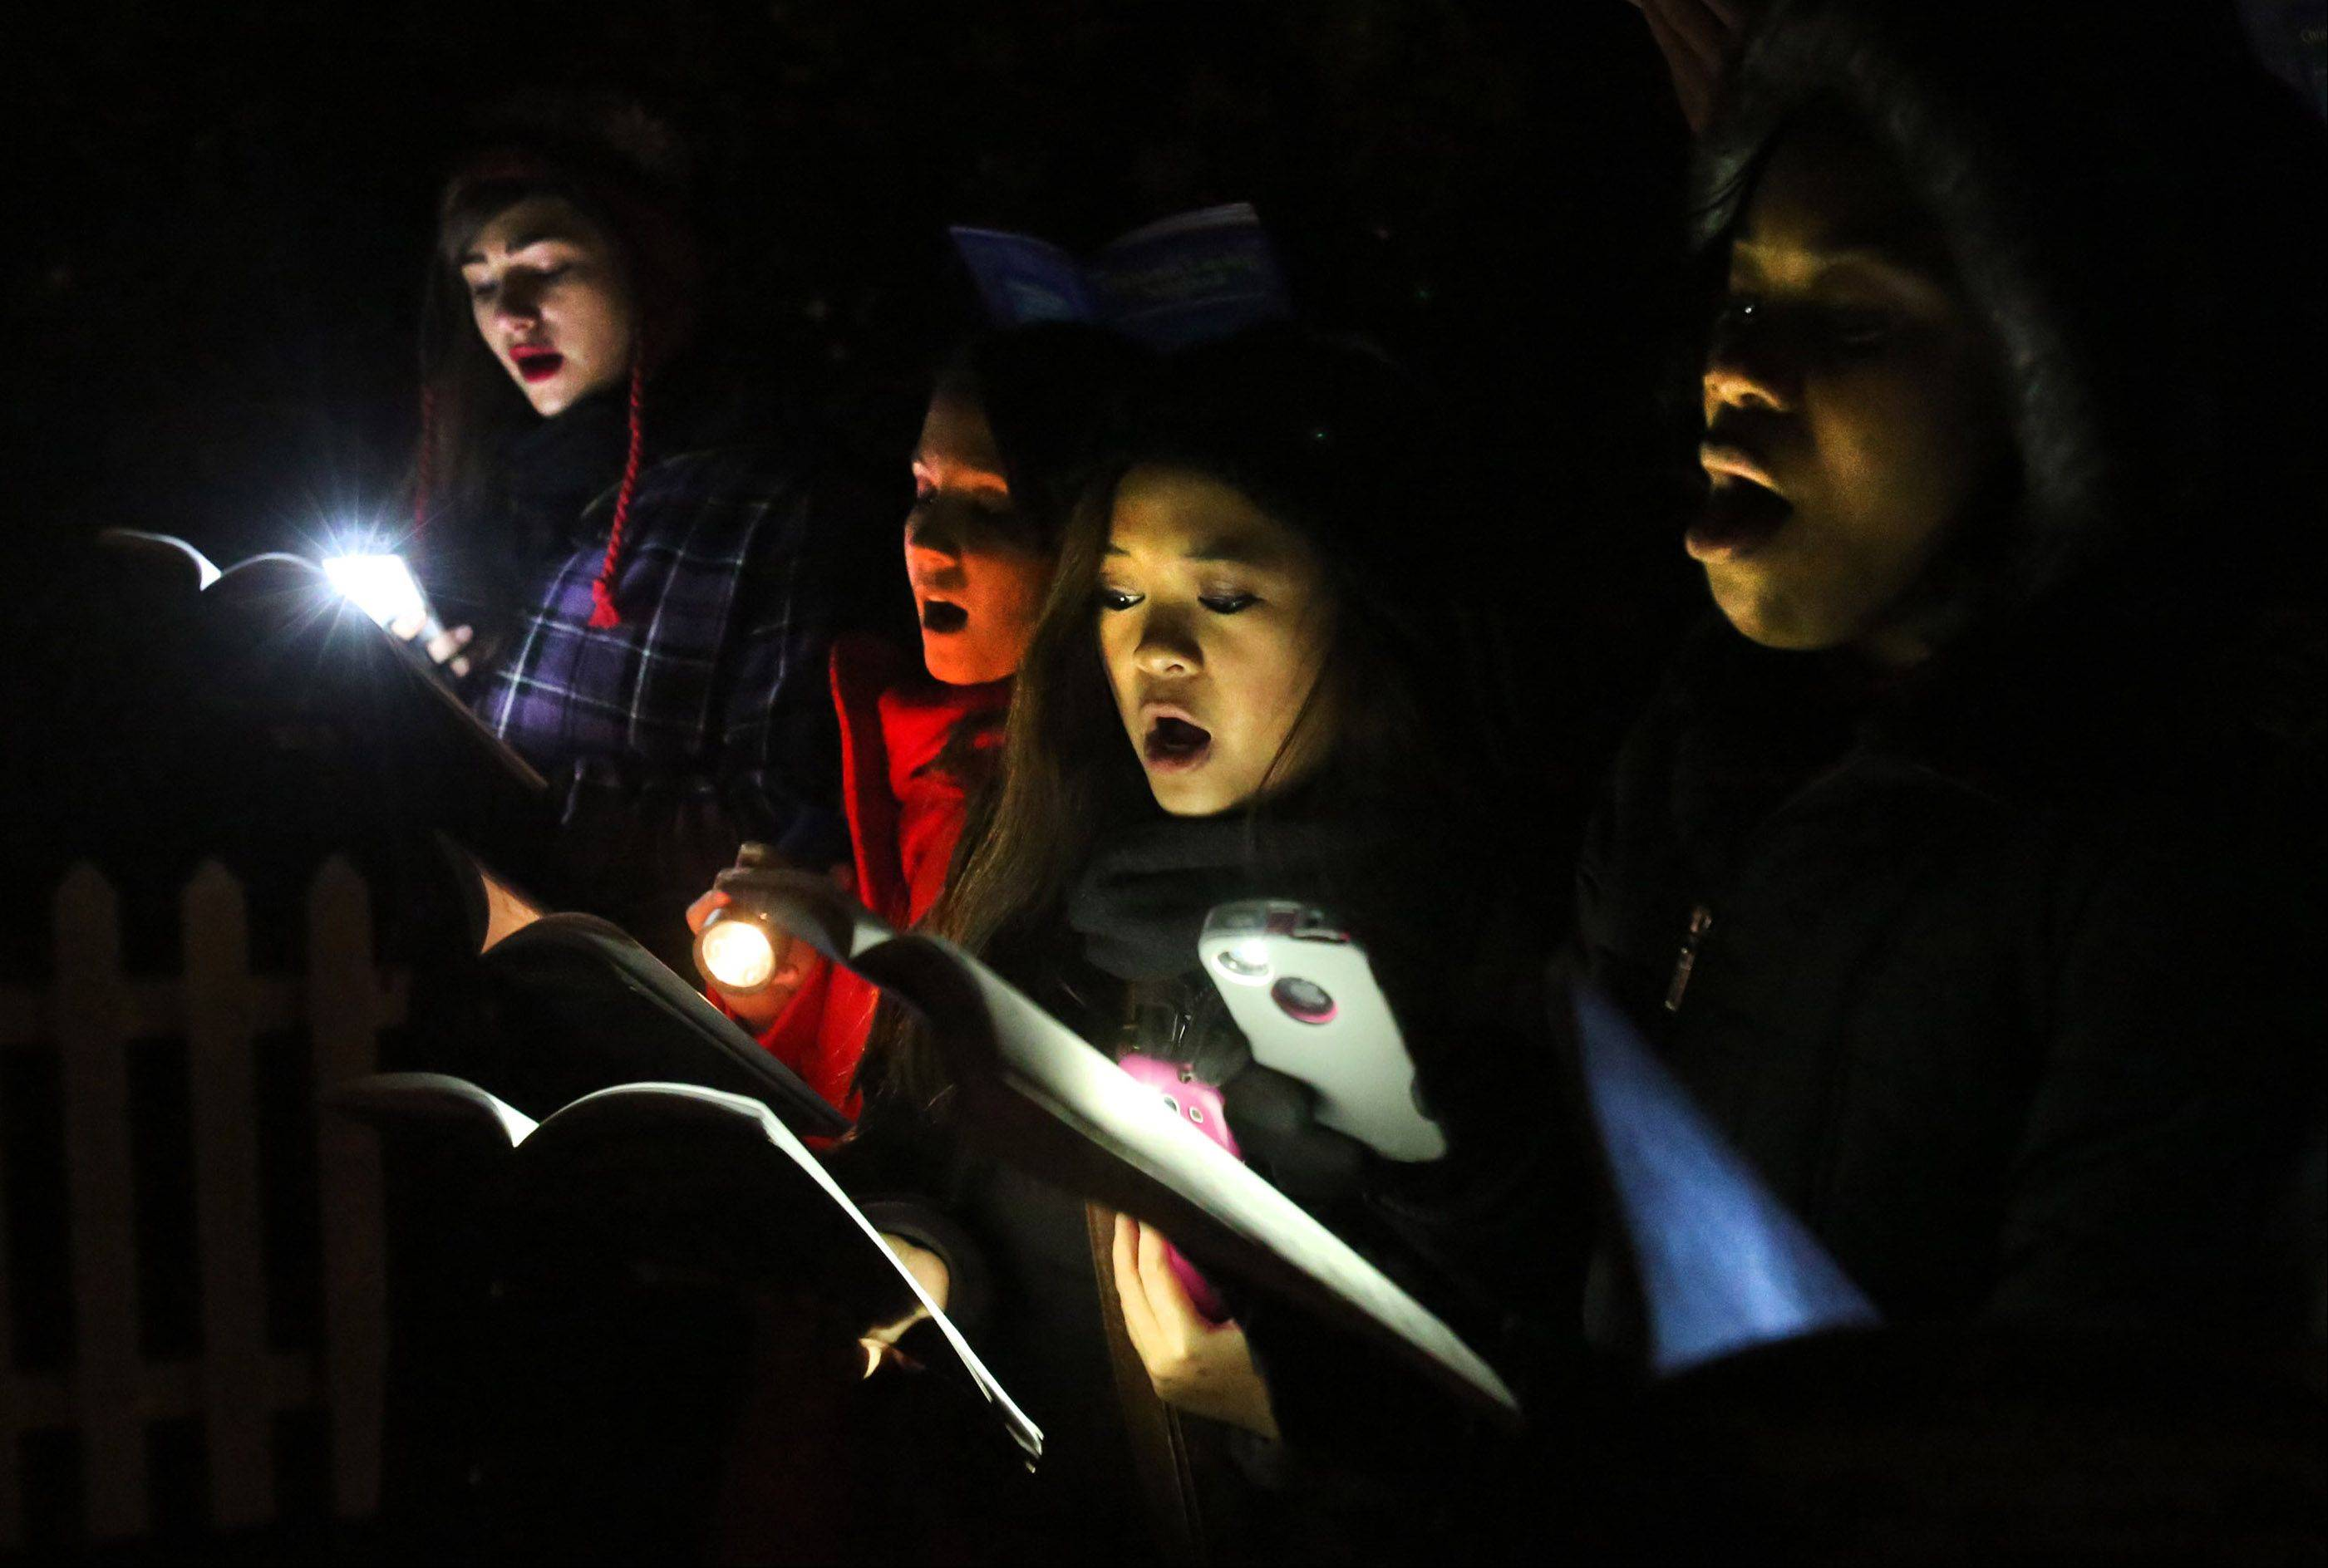 Sabrina O'Dowd, from left, Kaila Husk, Angelica Torres, Shiloh Lampkin and other members of the Round Lake High School group Mental Notes use their phones to light their music books as they sing Christmas songs during Round Lake Beach's tree-lighting event on Friday night.